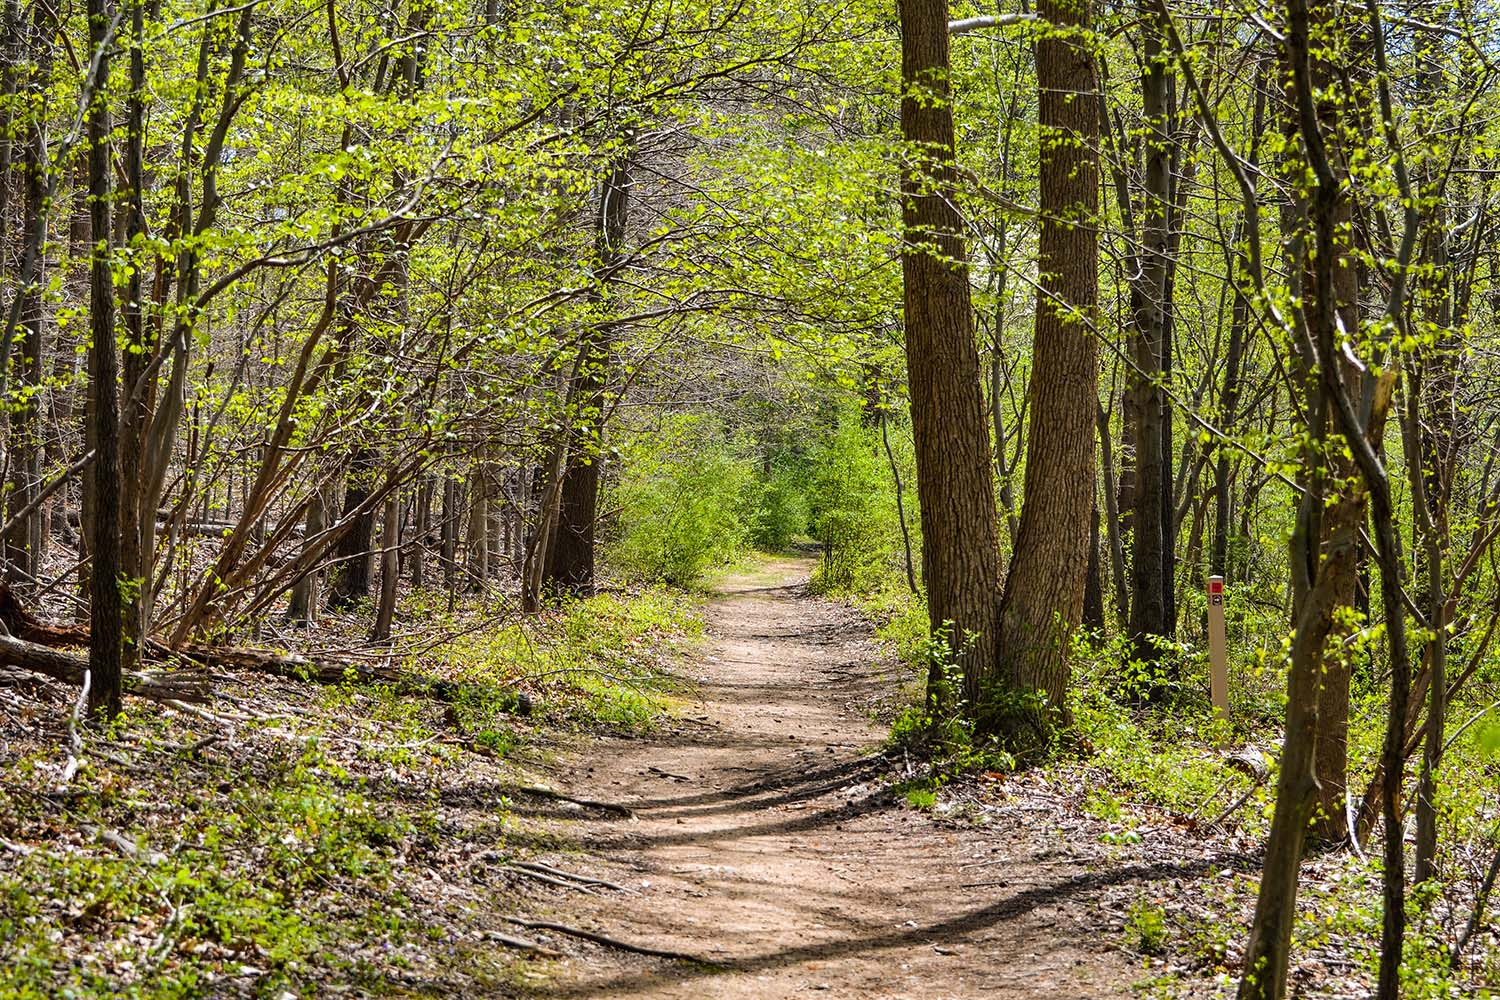 Trail through the woods along the Brandywine creek in Delaware, USA